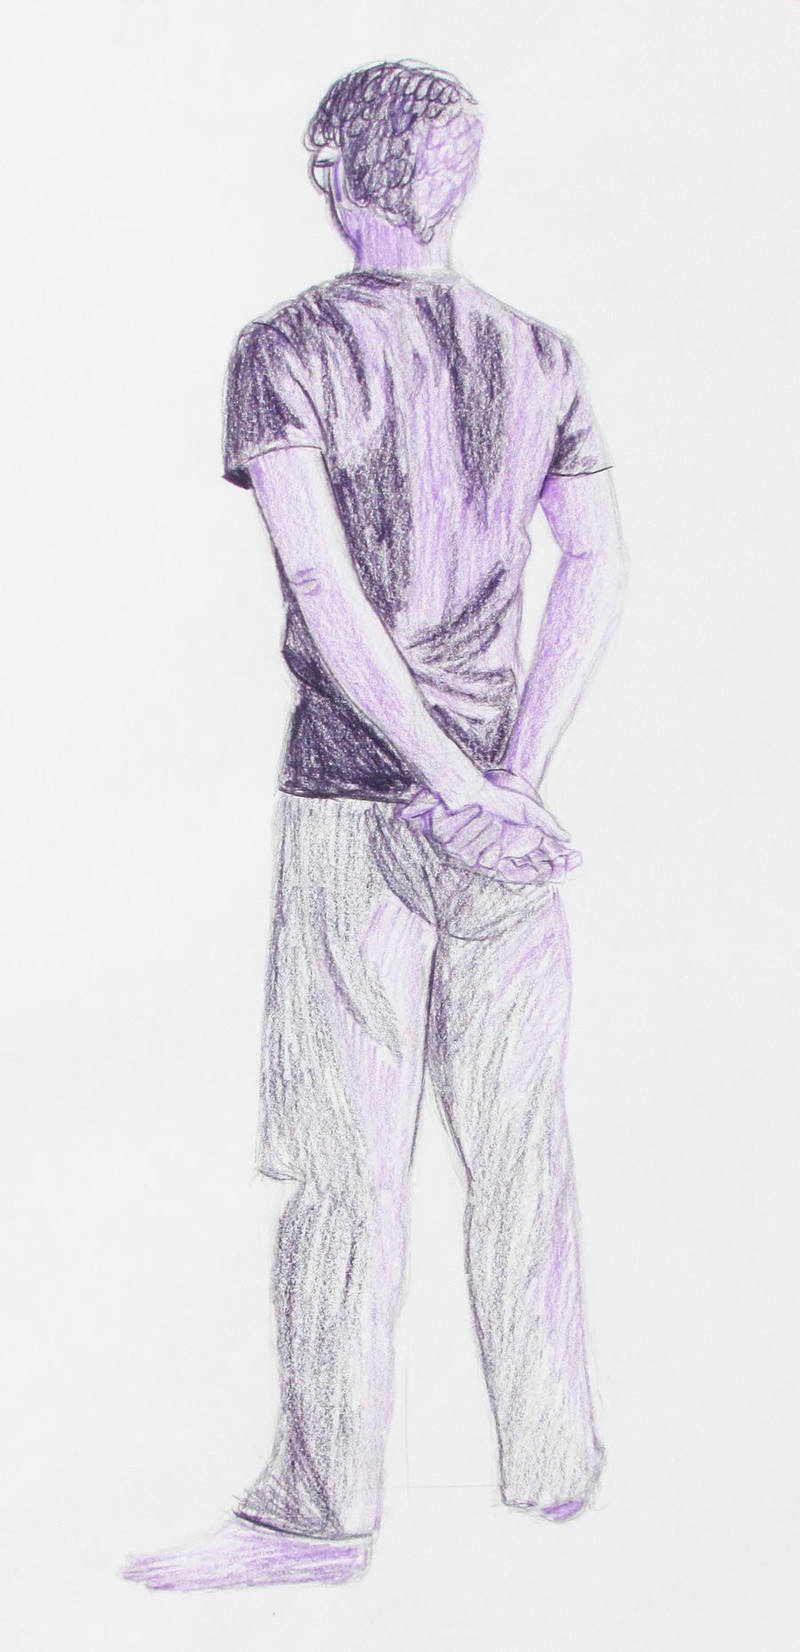 Man Figure Drawing by Xandoval